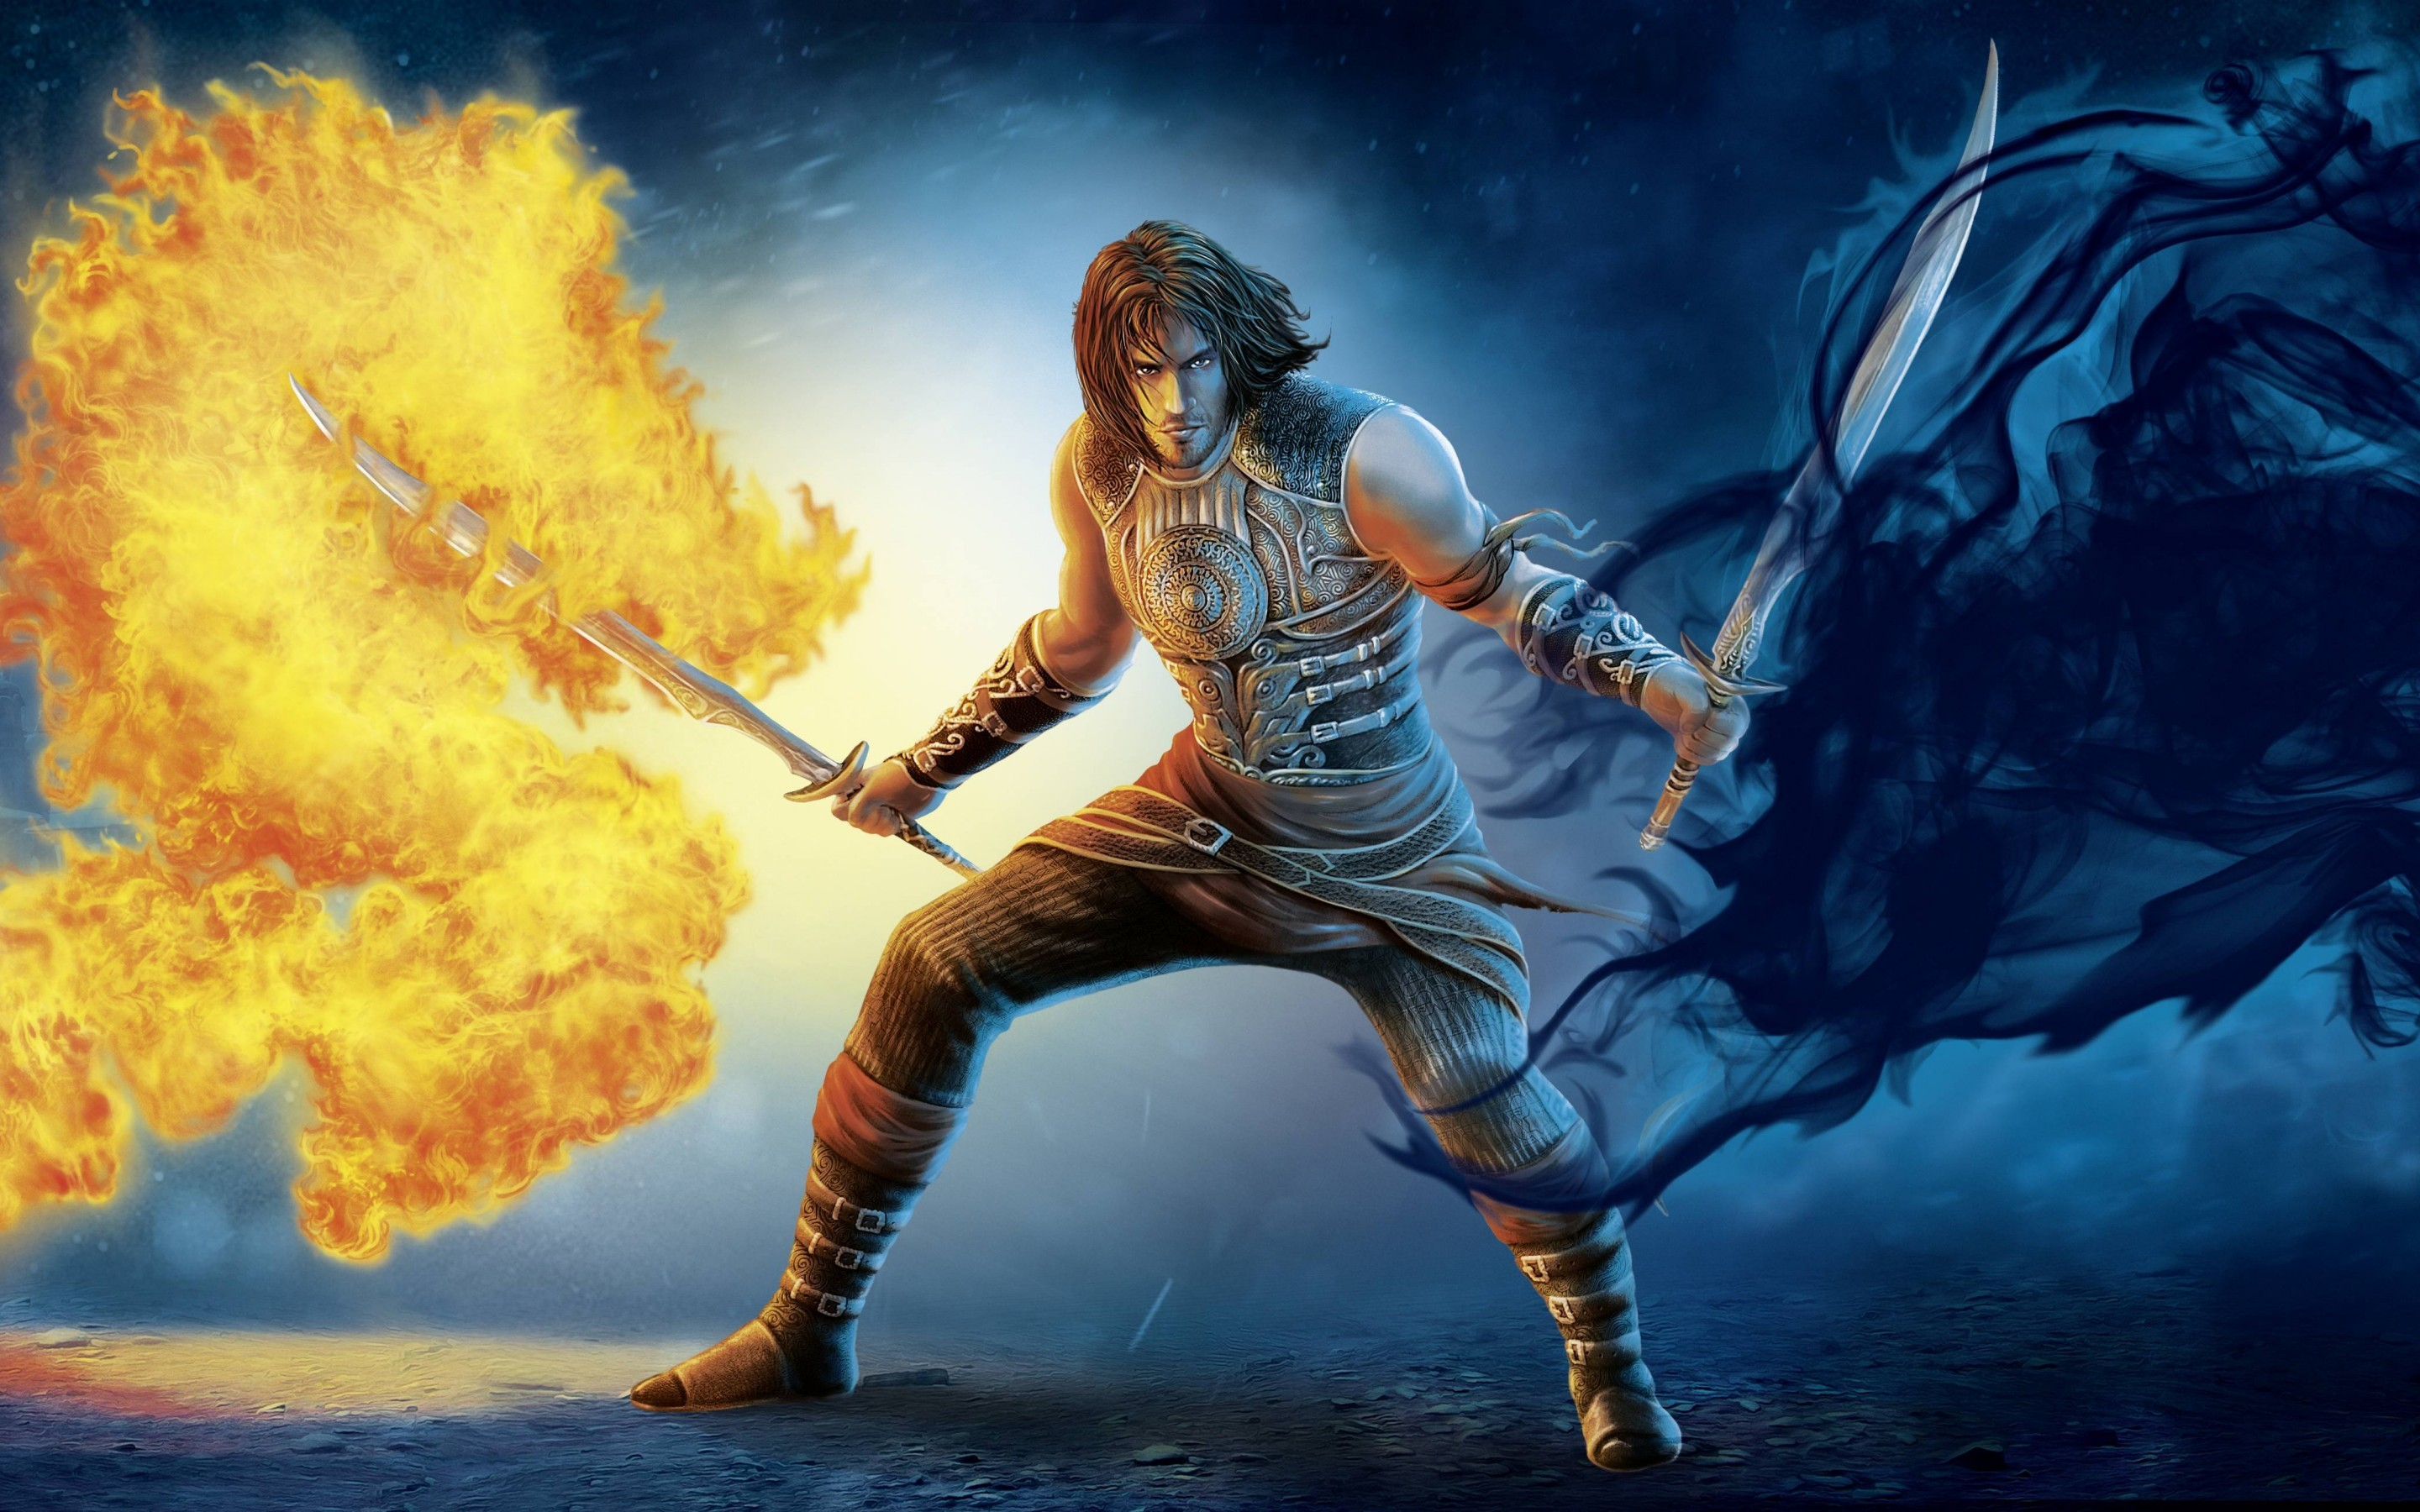 2880x1800 Prince of Persia 2 The Shadow and the Flame